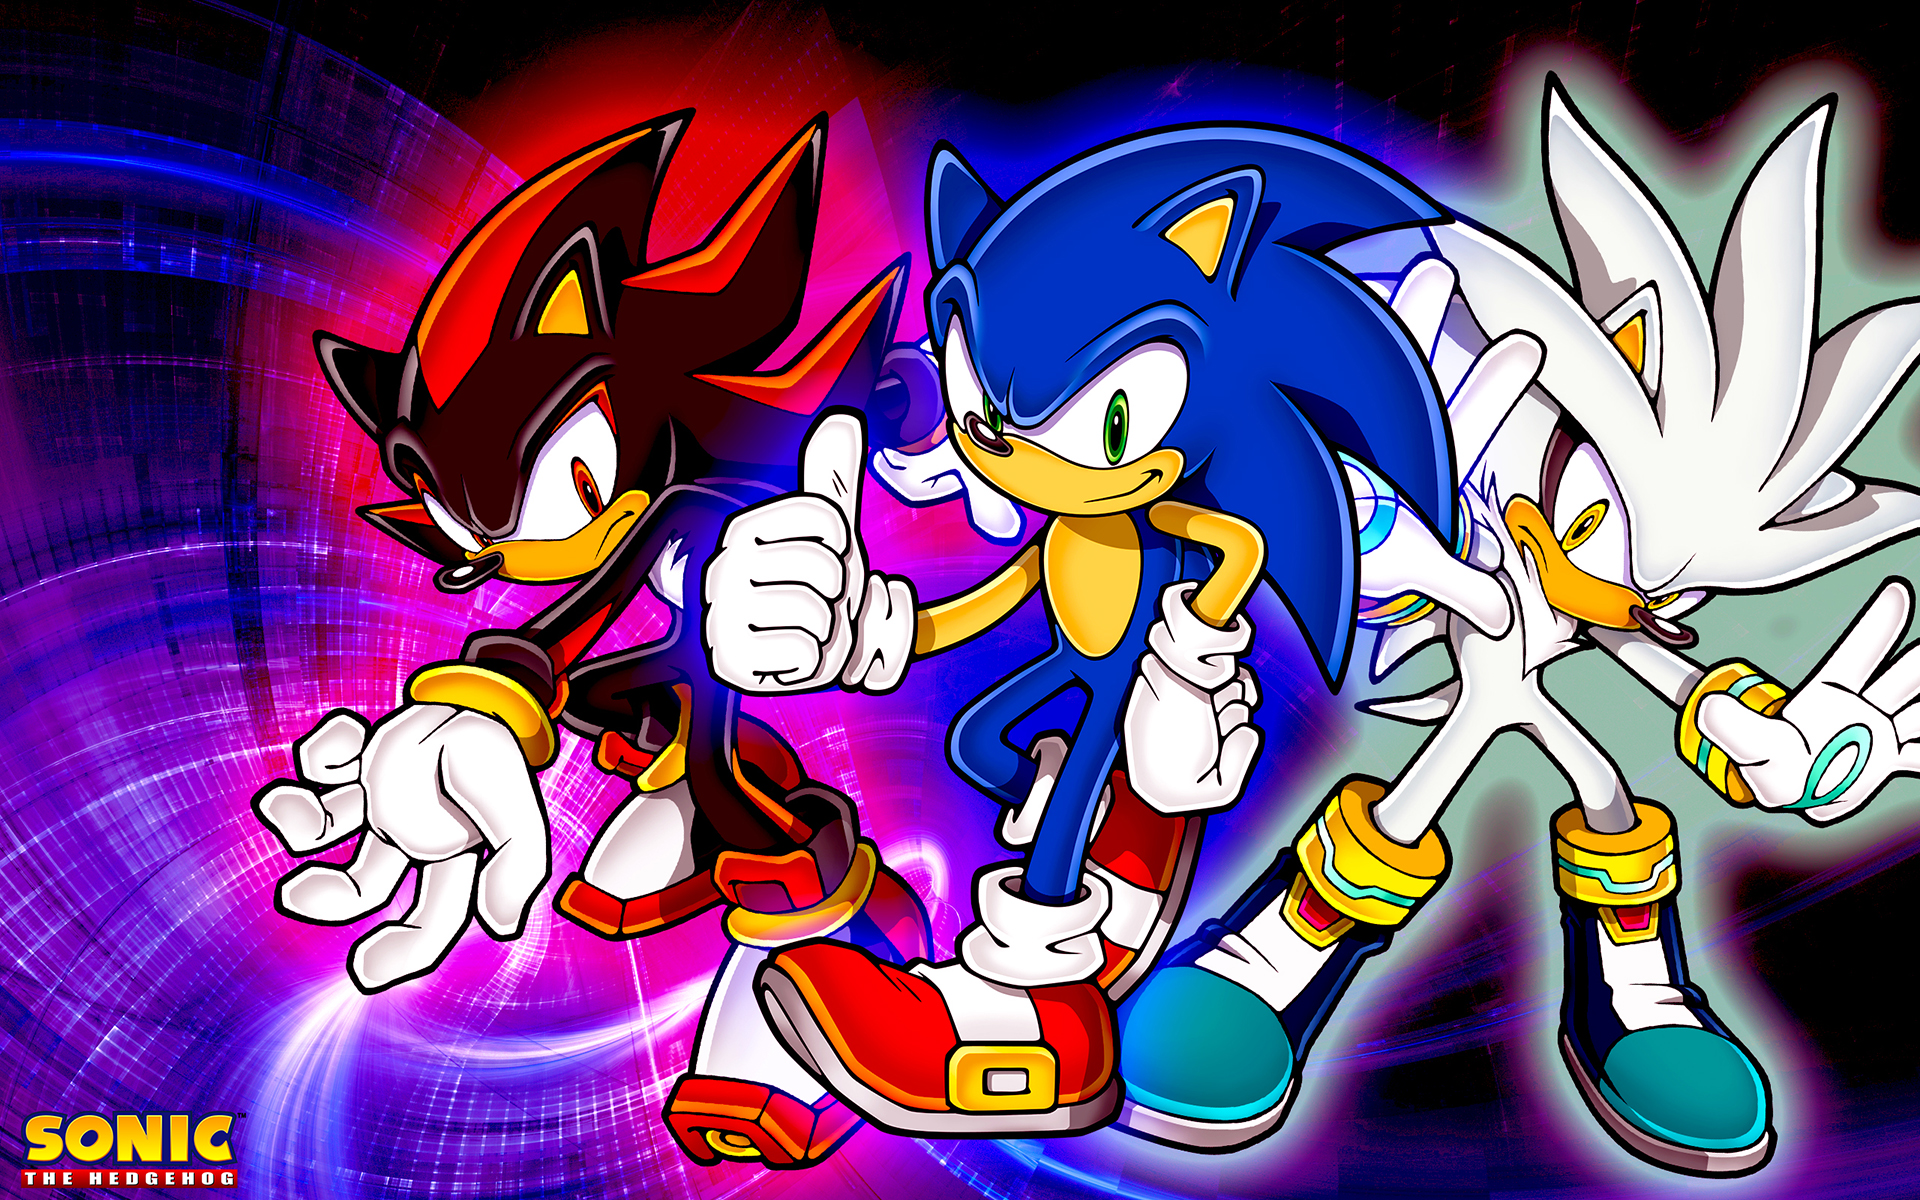 SonicTheHedgehogBG SonicShadow And Silver Wallpaper By